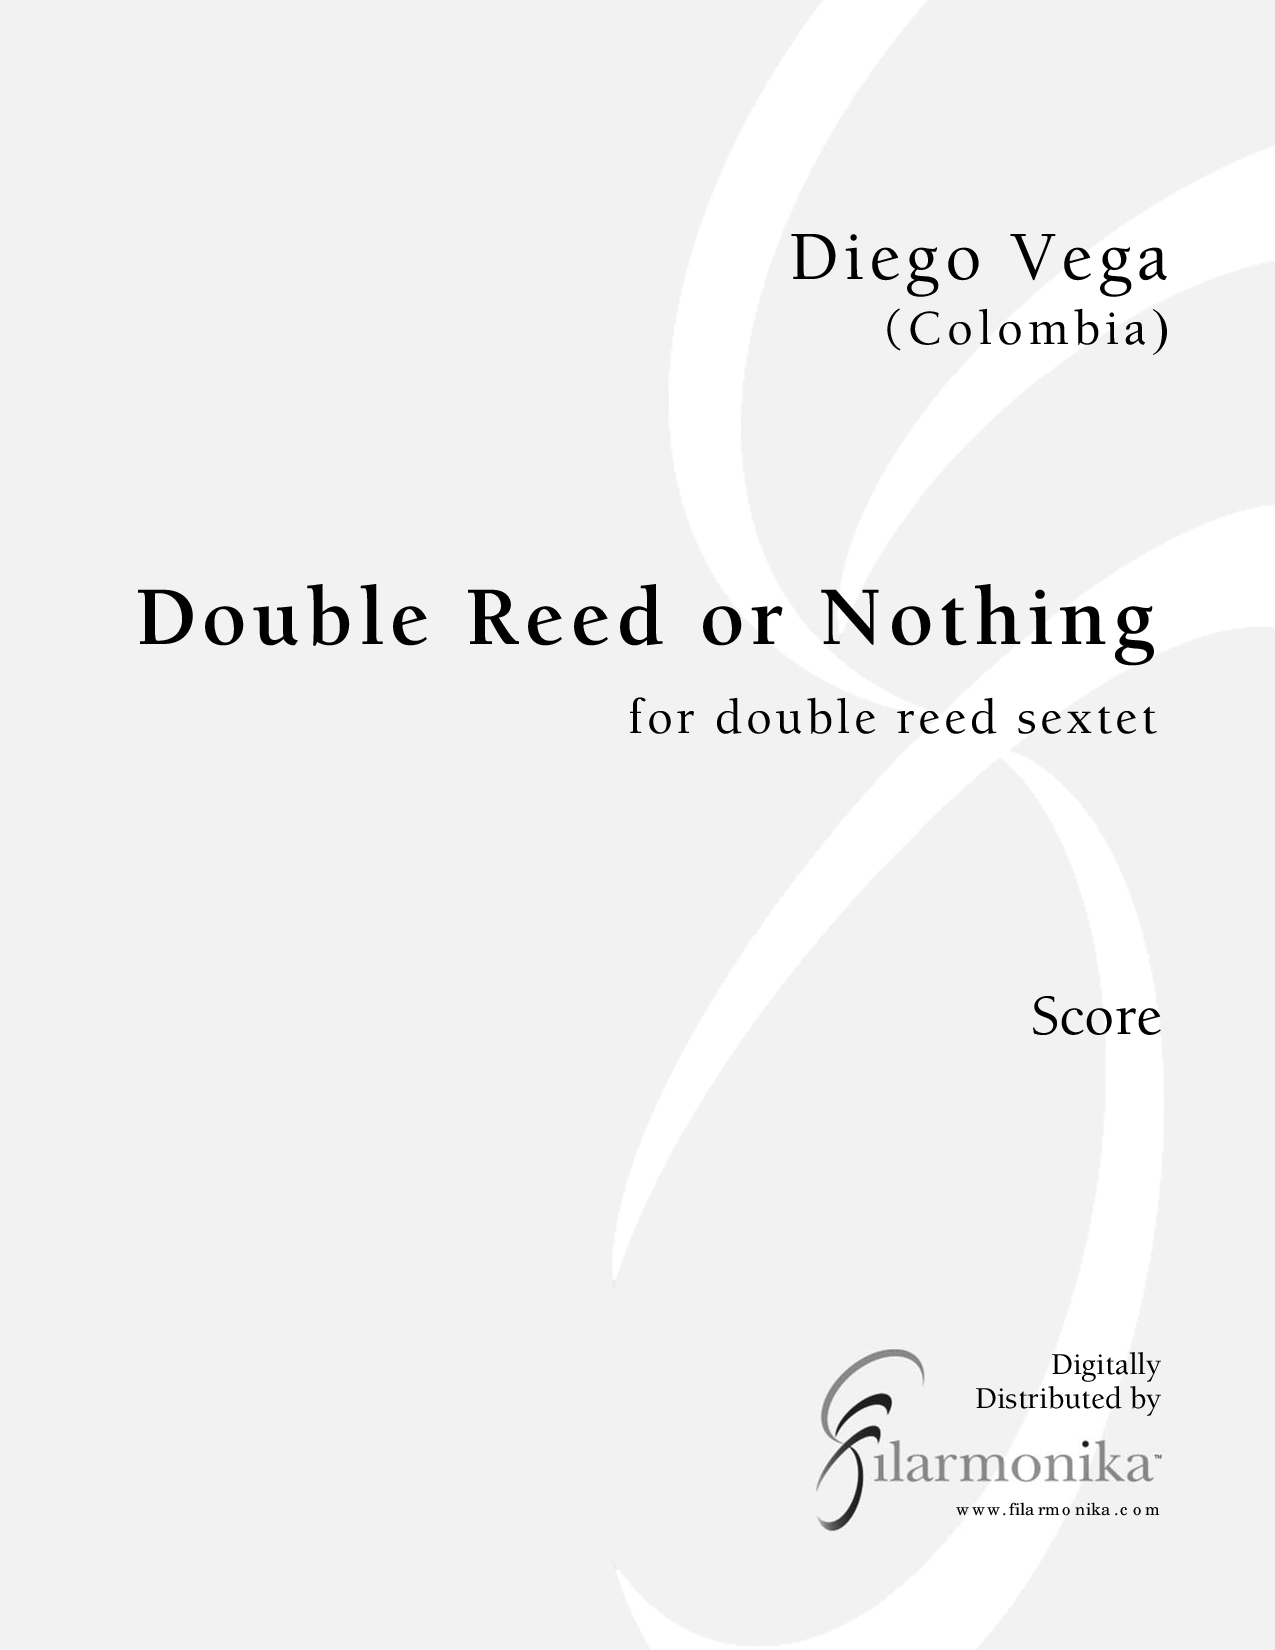 Double Reed or Nothing, for double reed sextet